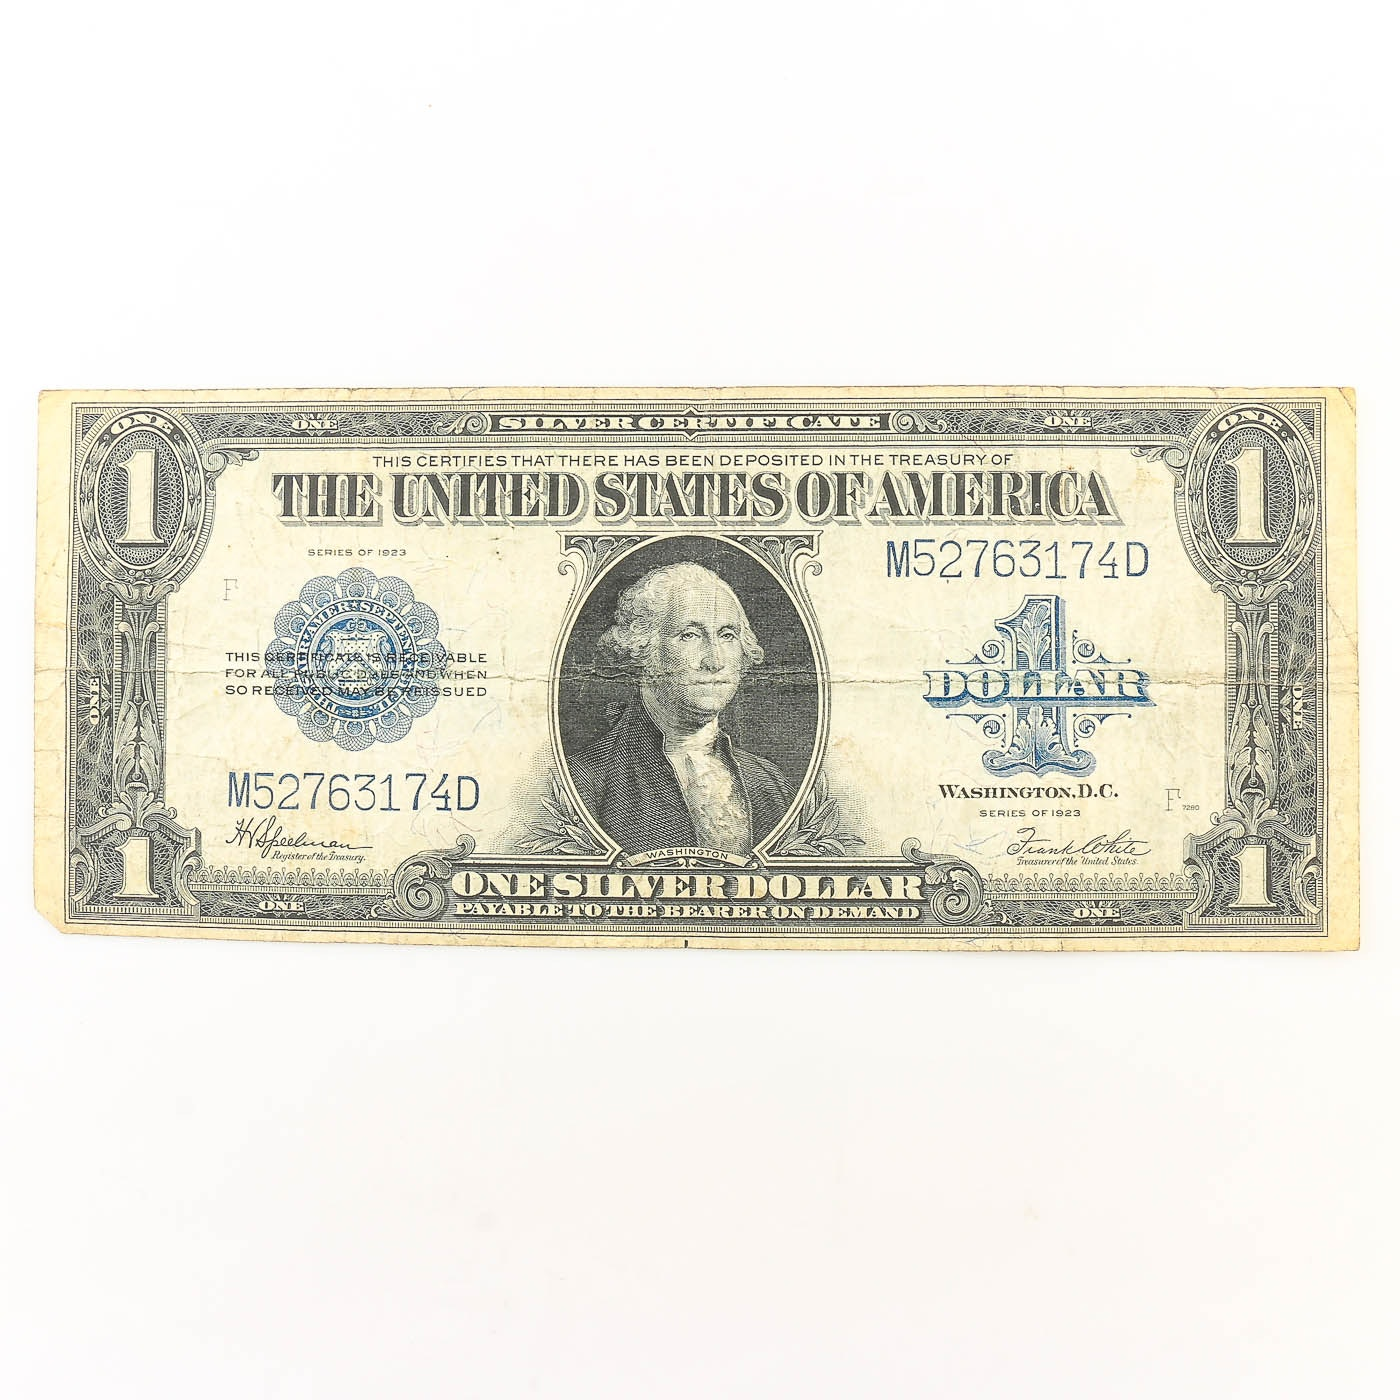 Series of 1923 Large Format $1 Silver Certificate